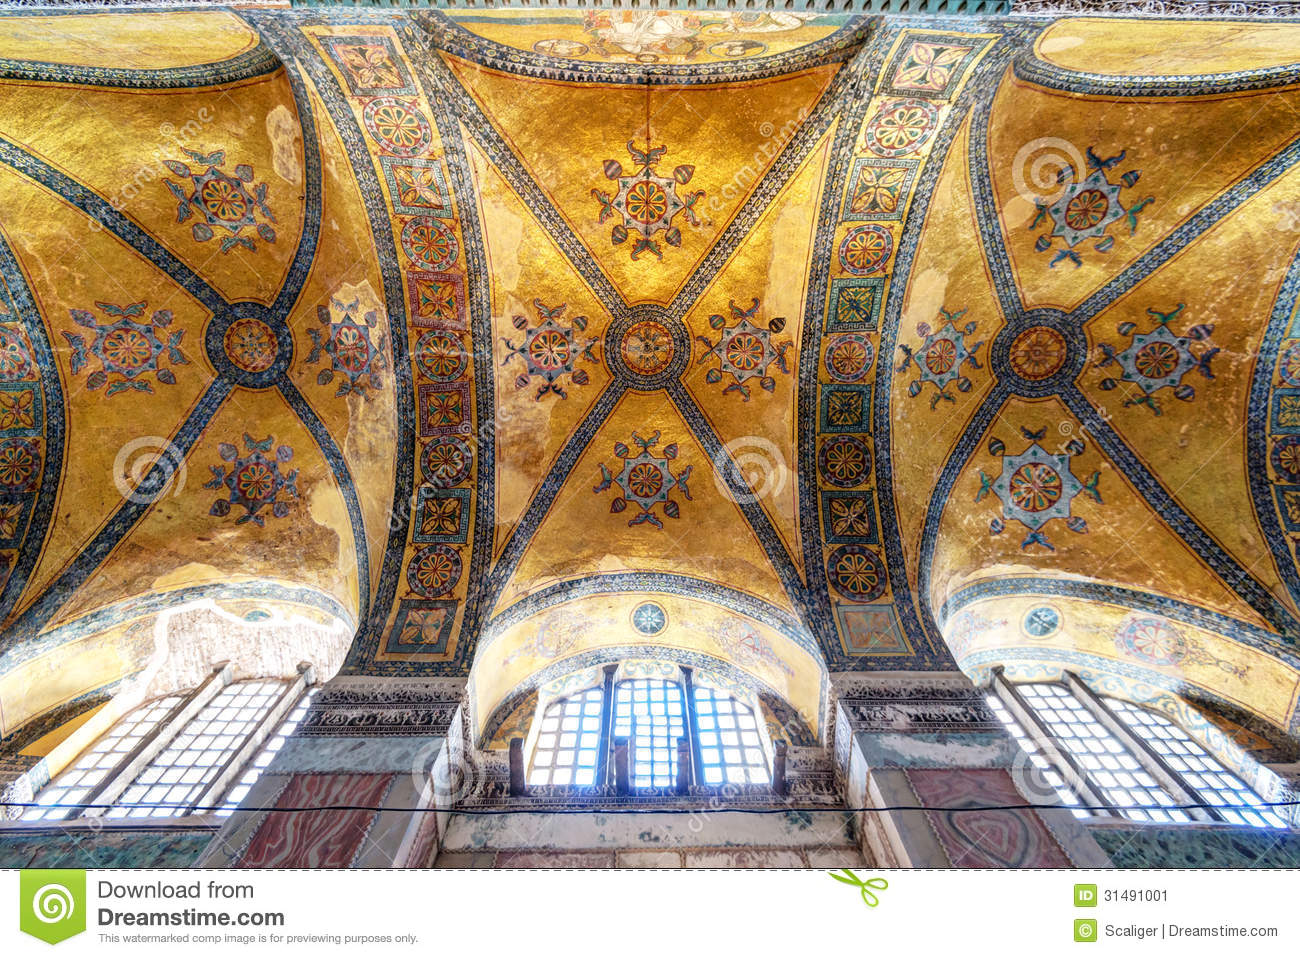 The ceiling of the Hagia Sophia in Istanbul, Turkey